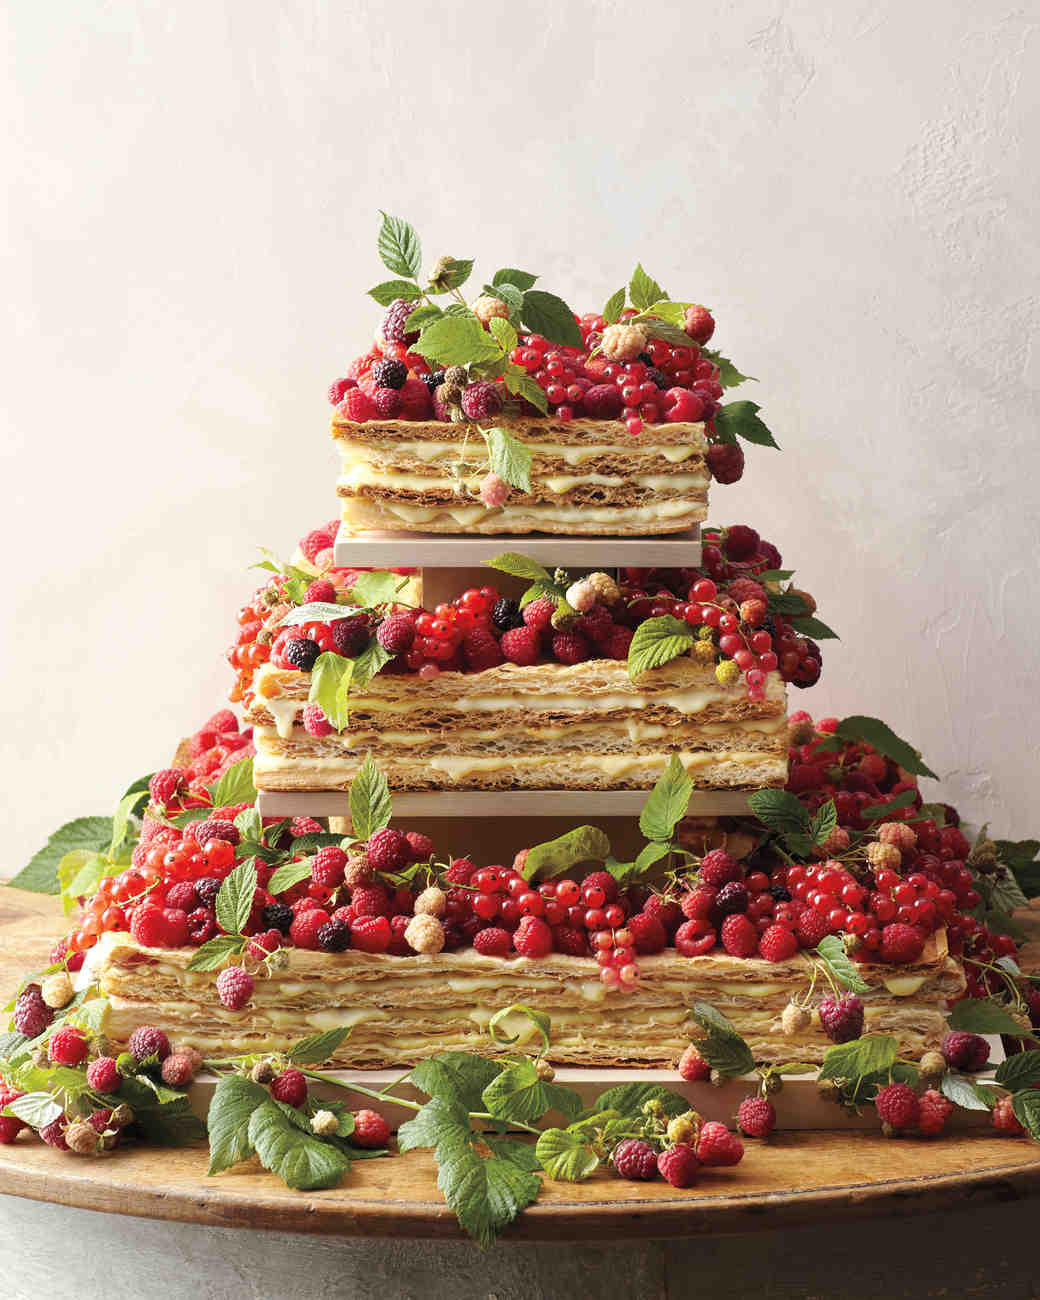 martha stewart italian wedding cake recipe worldly batters 5 wedding cakes from around the globe 17192